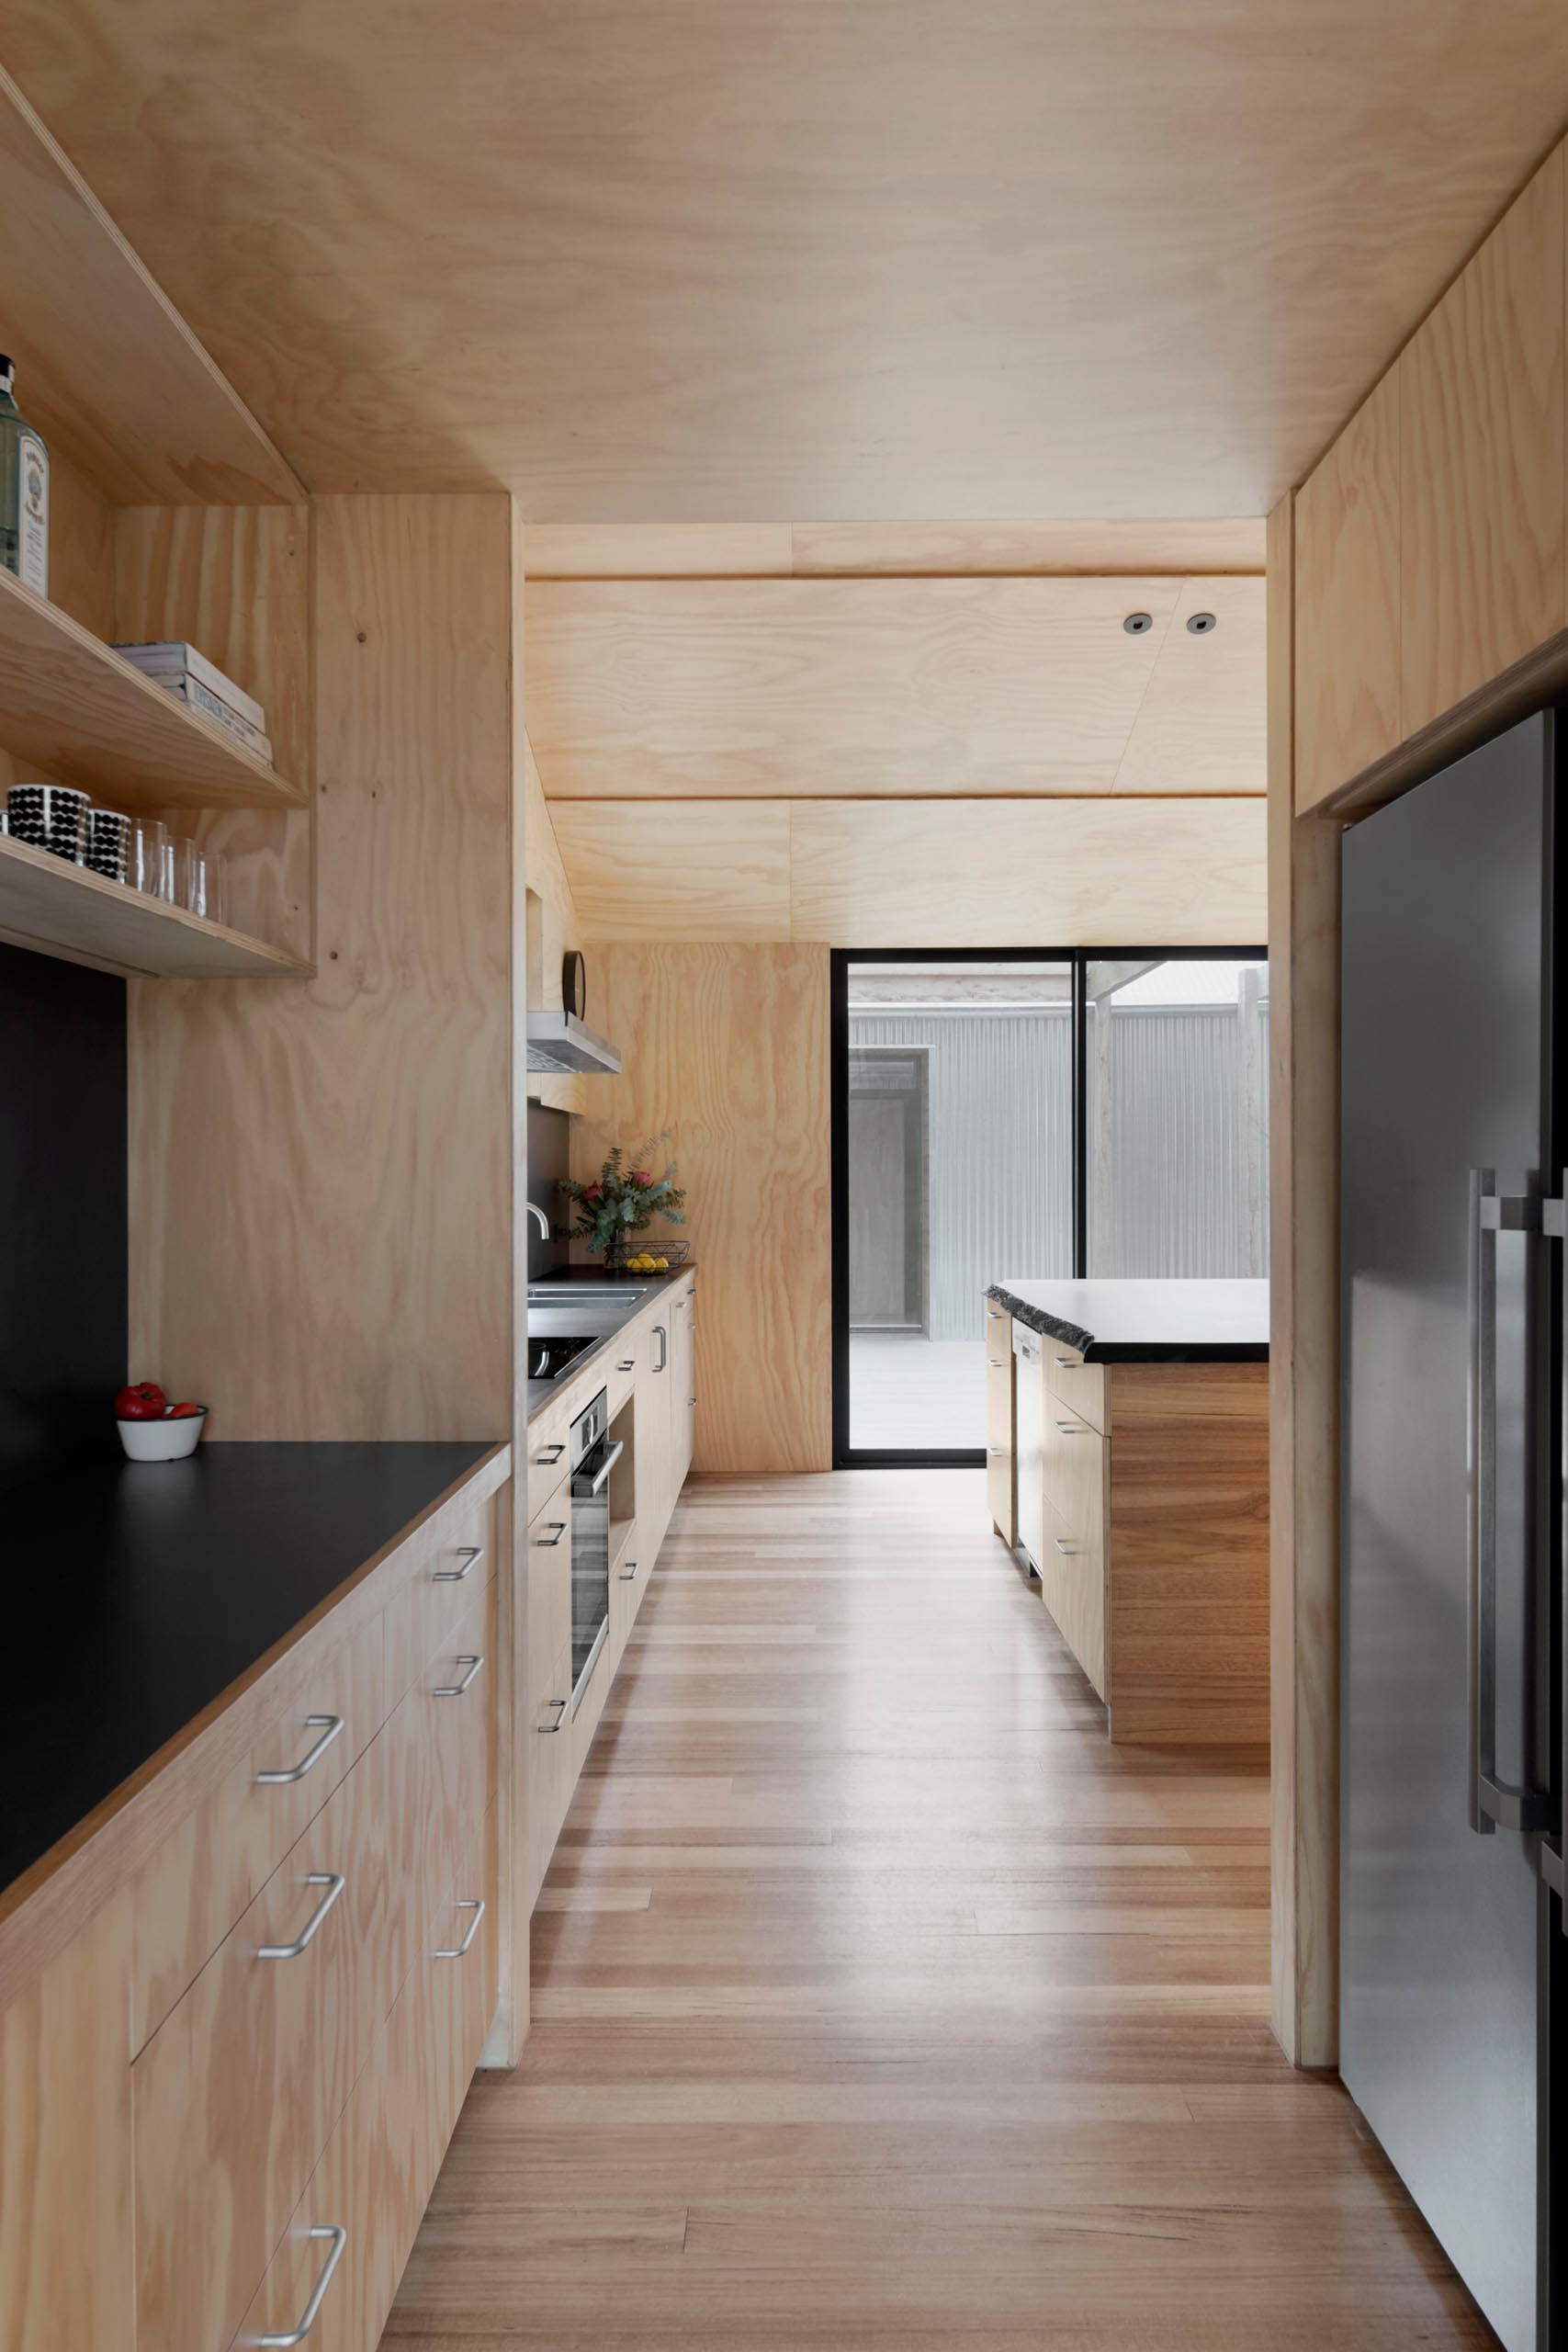 A modern plywood kitchen with a matte black countertop and backsplash, and separate pantry.